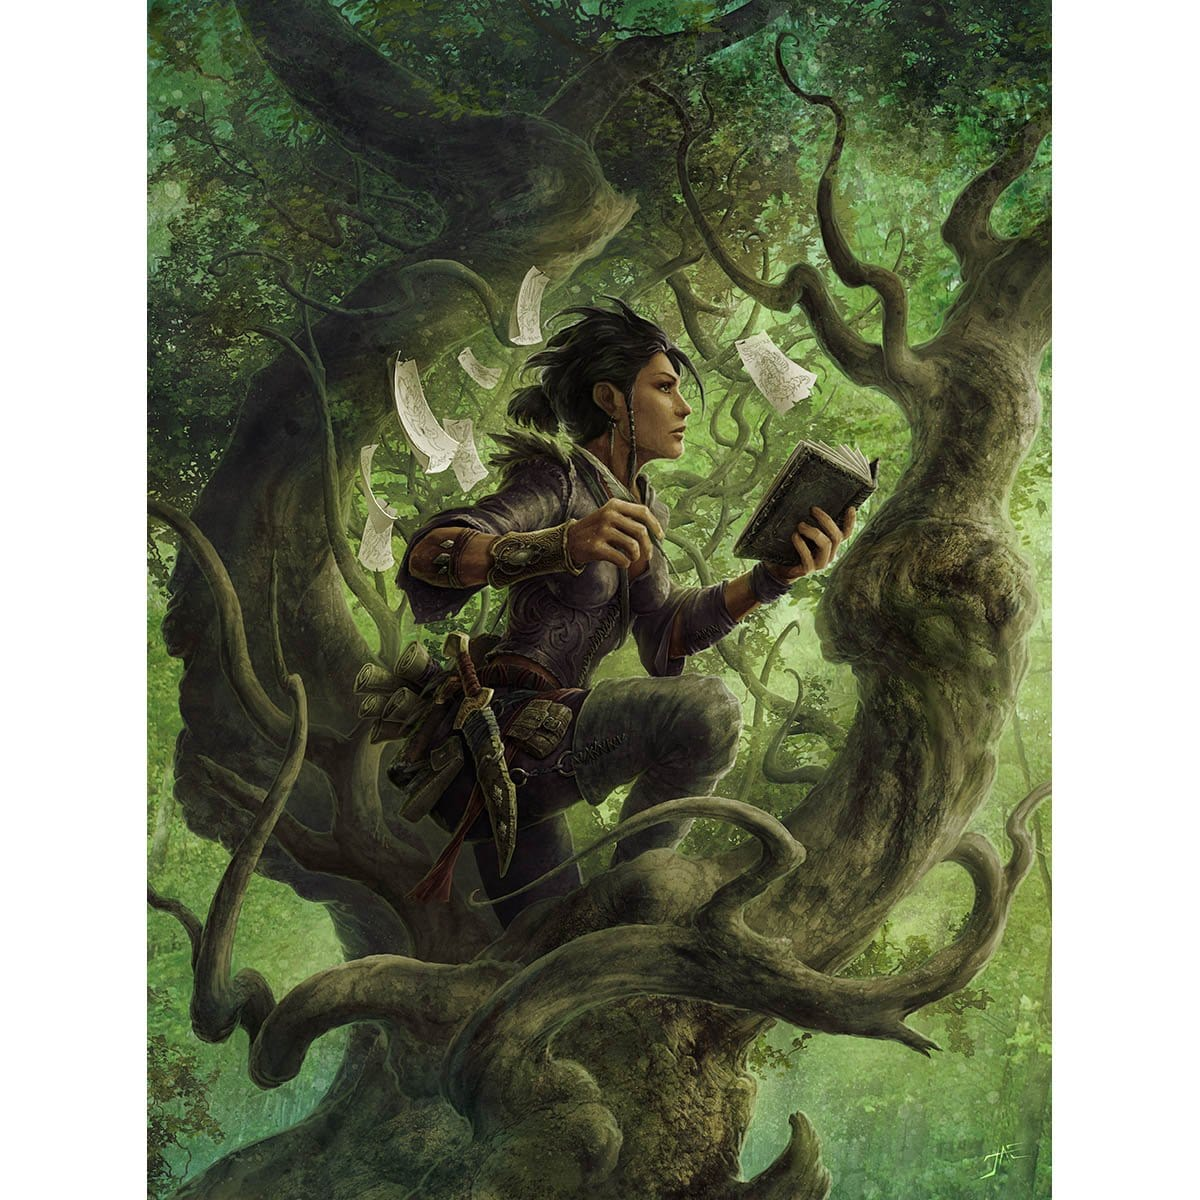 Mwonvuli Beast Tracker Print - Print - Original Magic Art - Accessories for Magic the Gathering and other card games